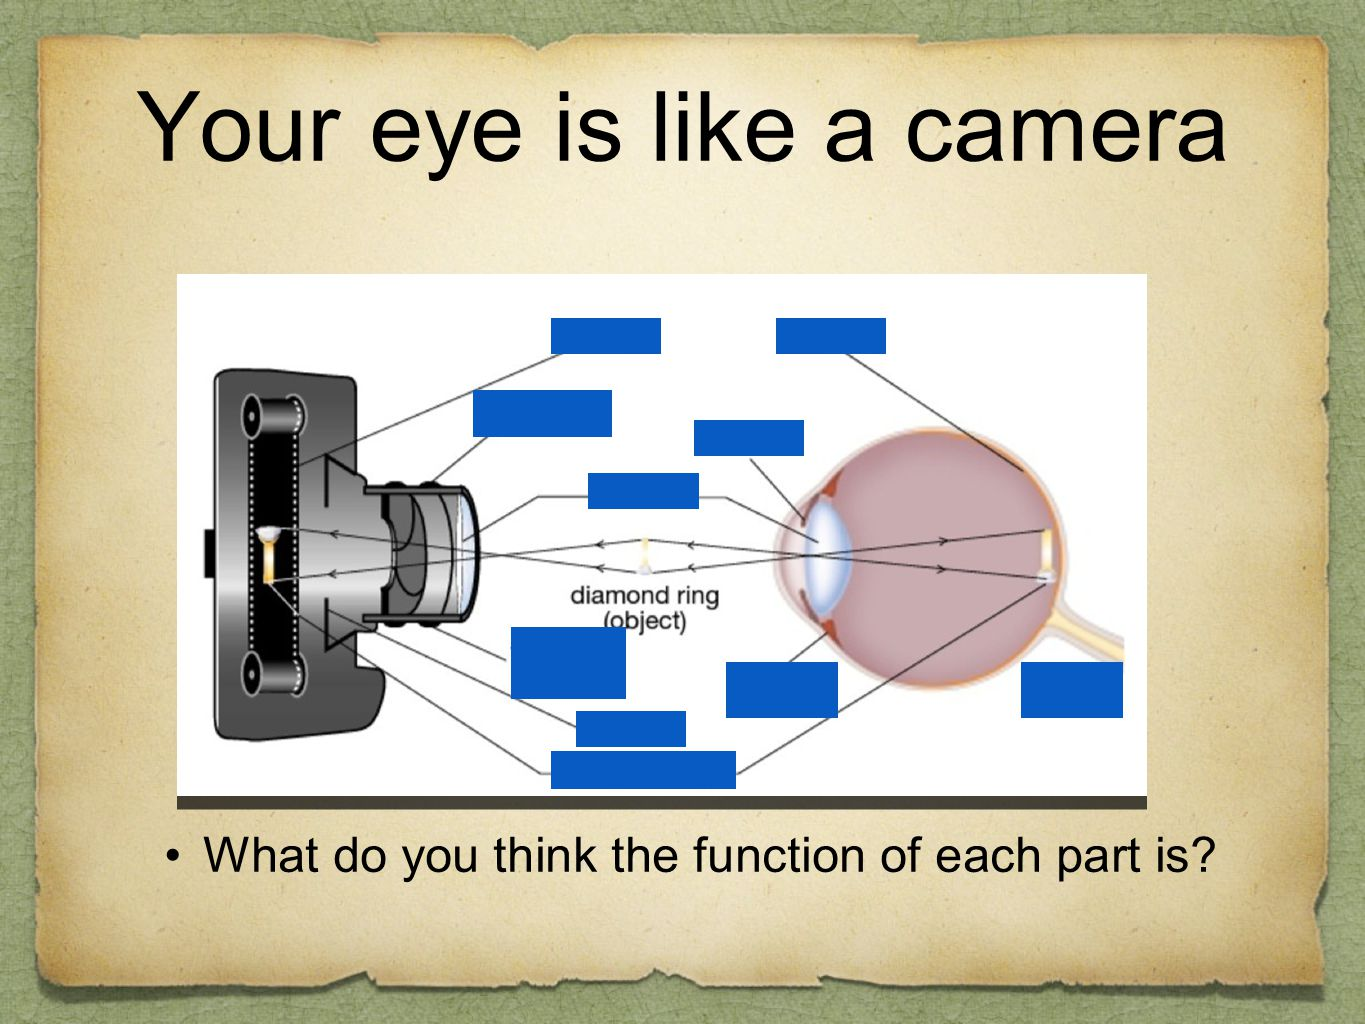 Your eye is like a camera